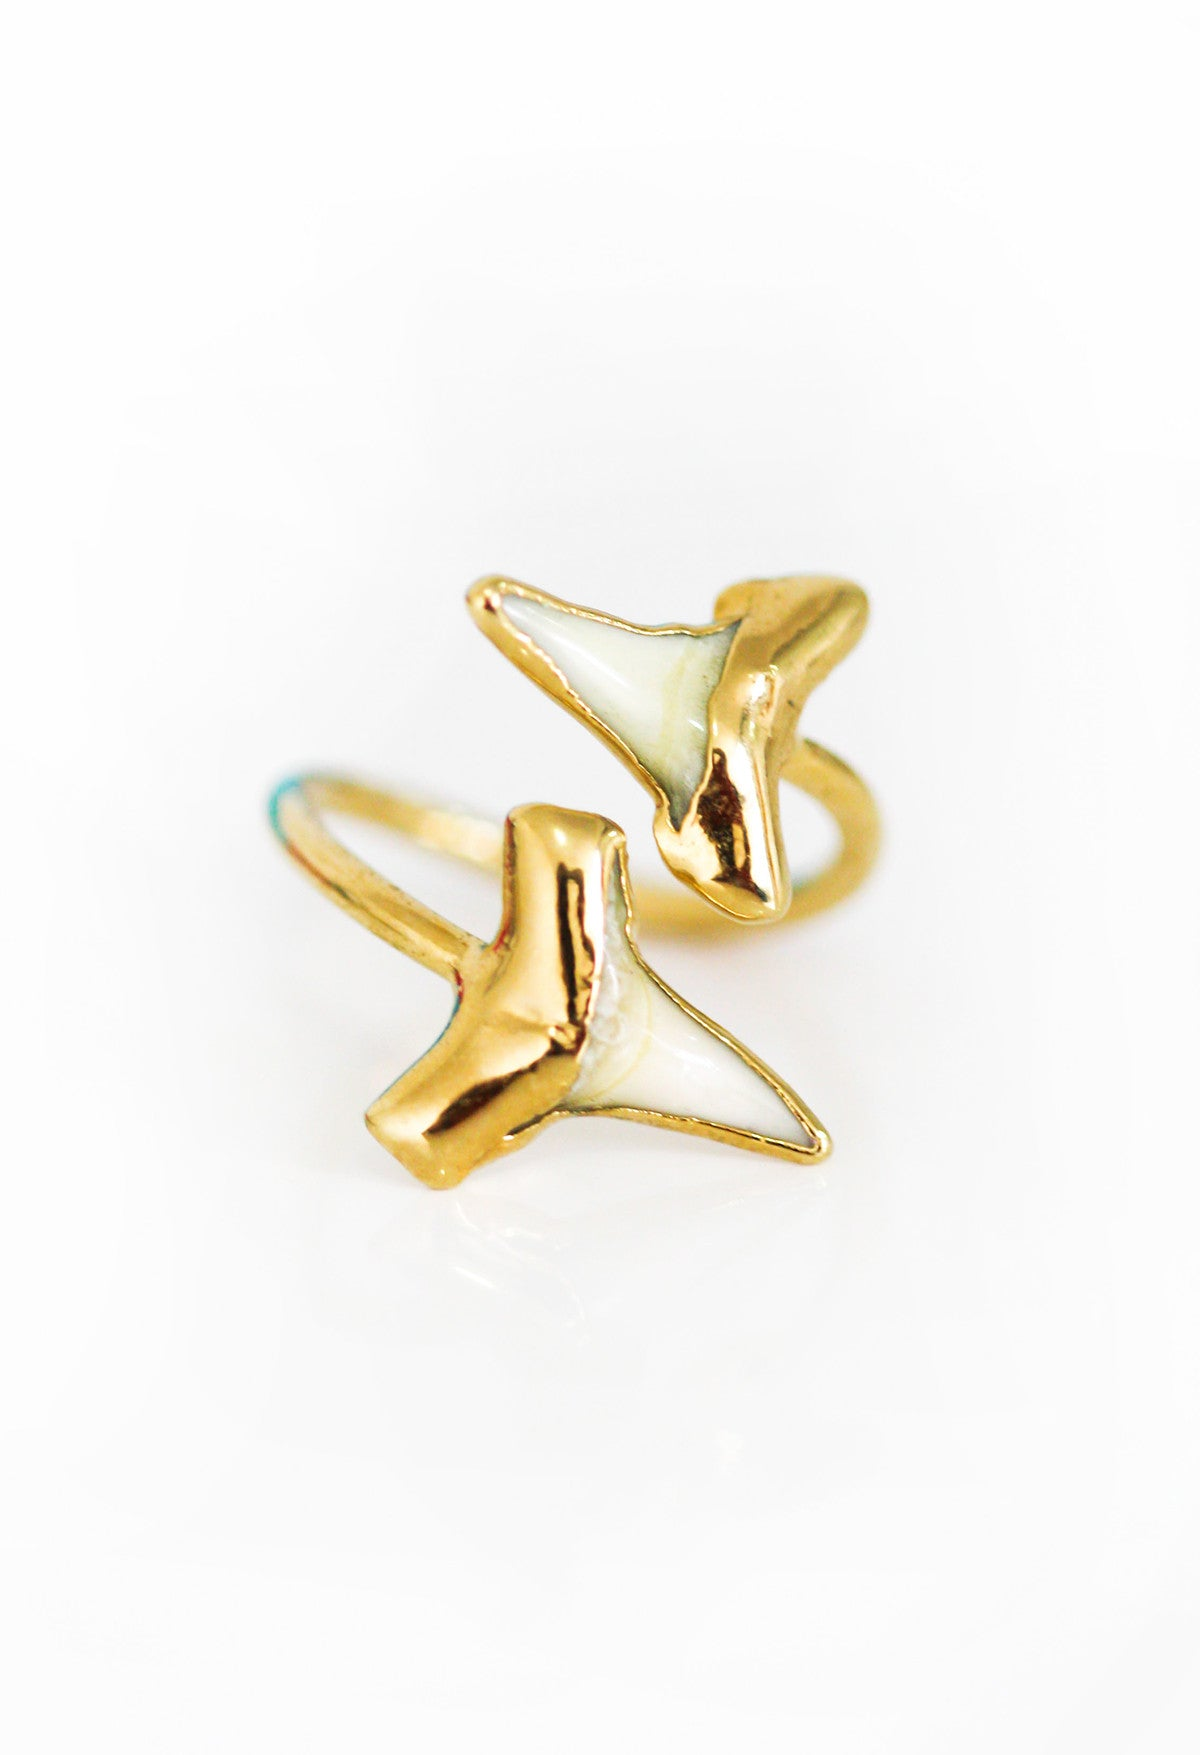 DUO shark tooth ring